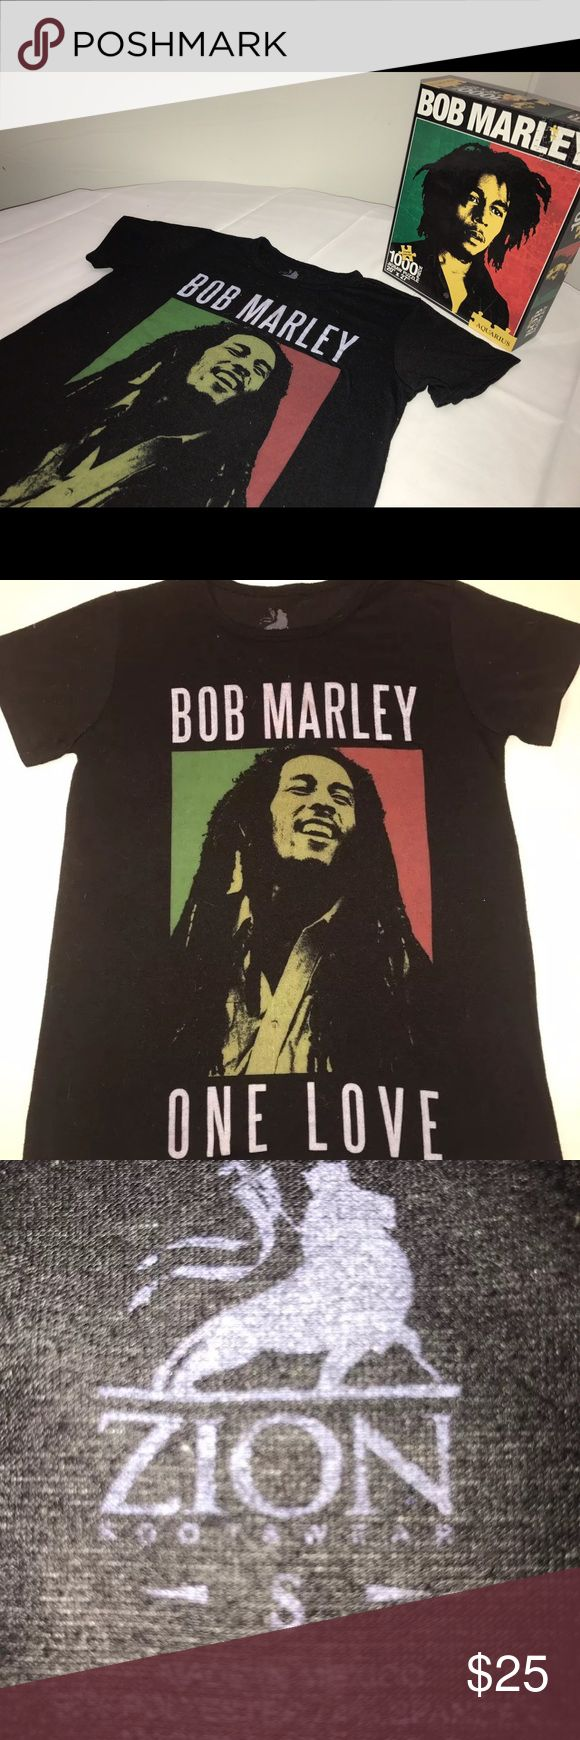 """BOB MARLEY #1 FAN t shirt & puzzle Like new black BOB MARLEY t - Shirt by ZION for ladies size small. Measurements- 17"""" across Length top to bottom- 23"""" Soft cotton blend SmallAquarius Bob Marley One Love 1000 Piece Puzzle Features:  1000 Pieces Measures 20 x 27 when completed Full color with snug fitting pieces bob marley Tops Tees - Short Sleeve"""